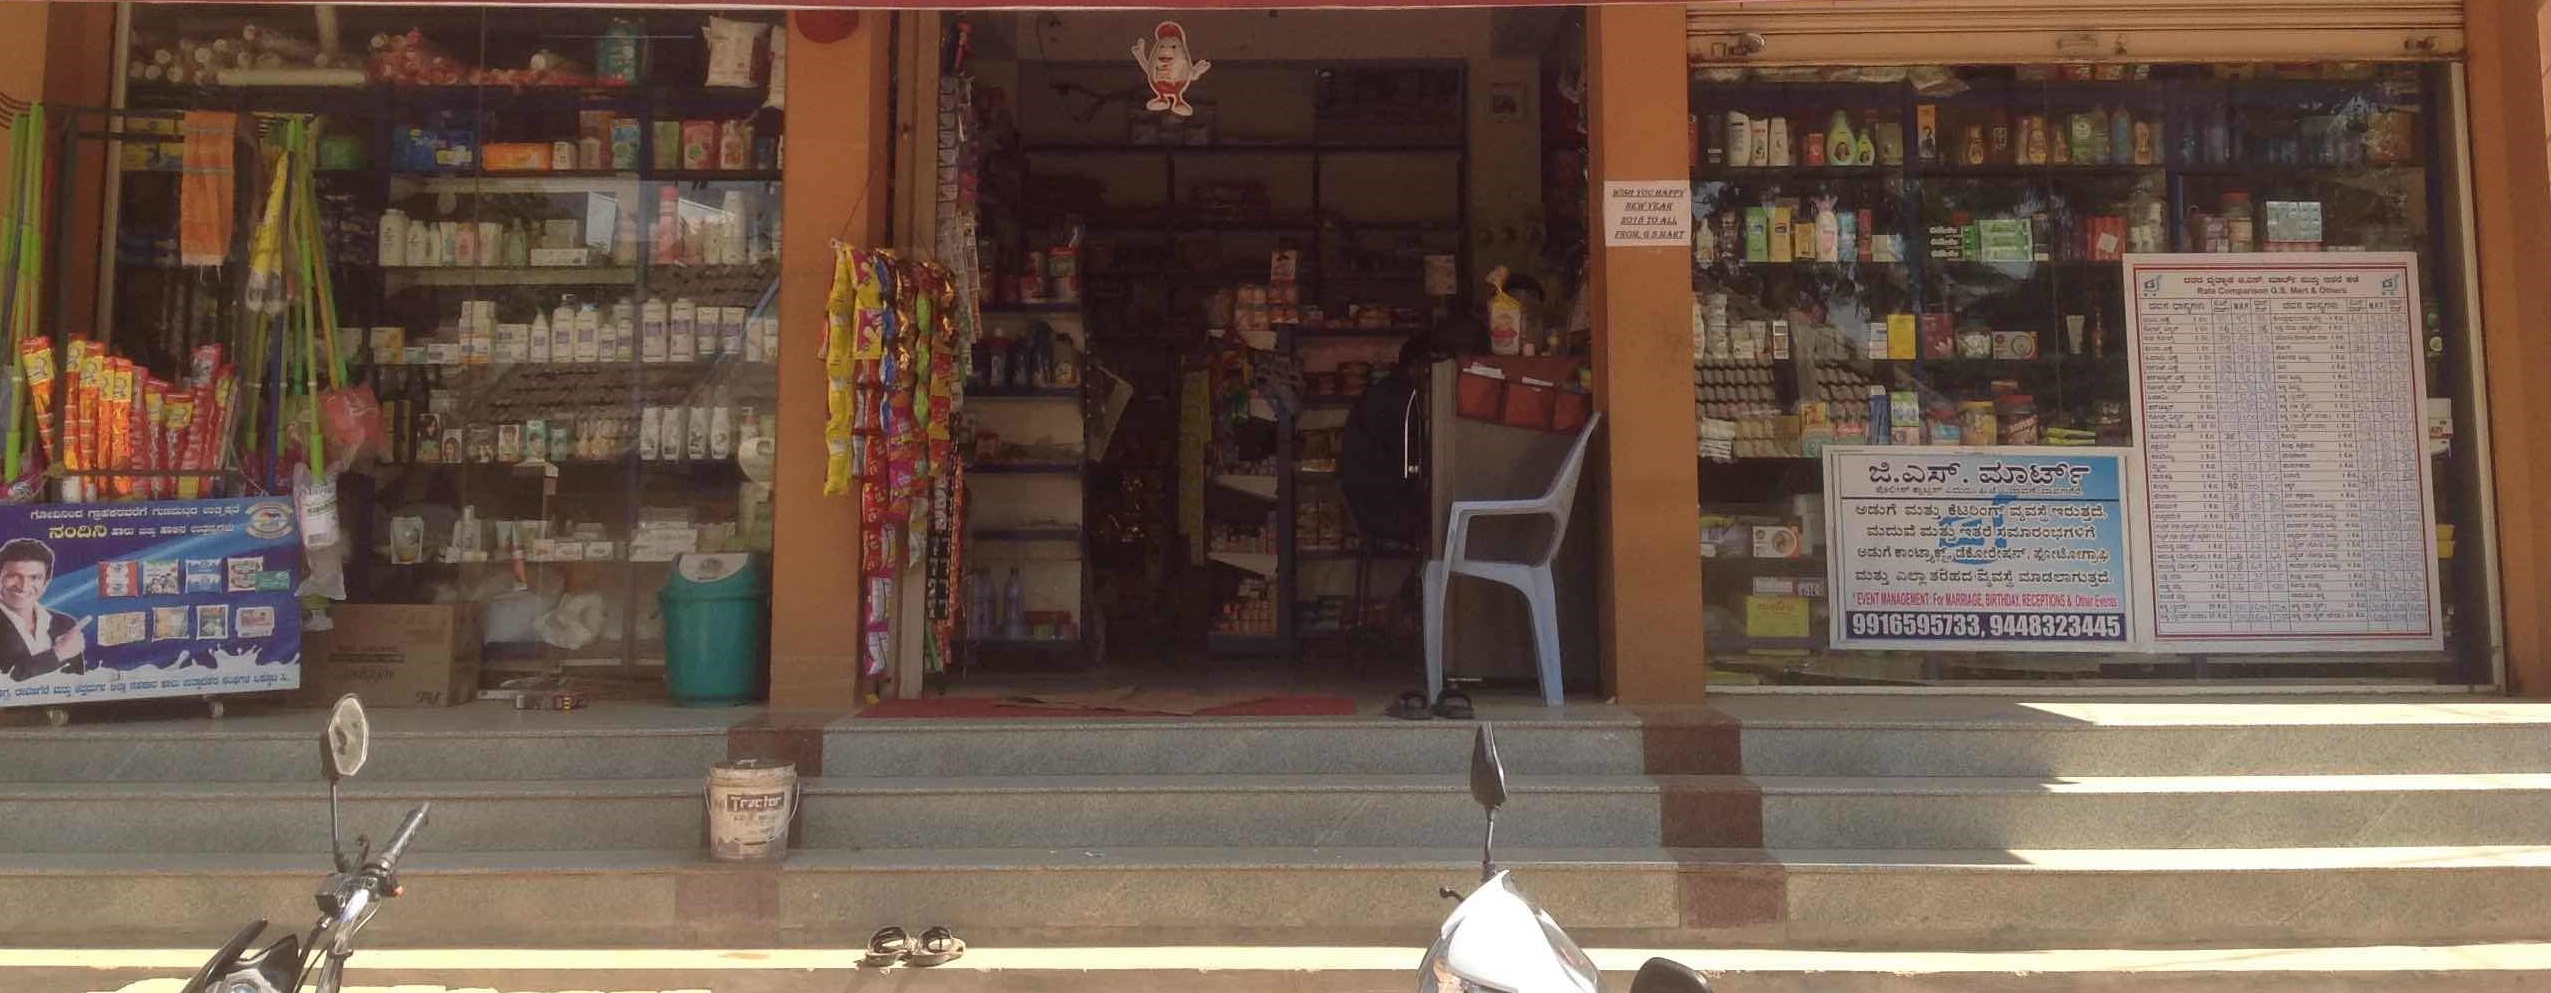 A Profitable Supermarket for Sale in Davanagere, Karnataka